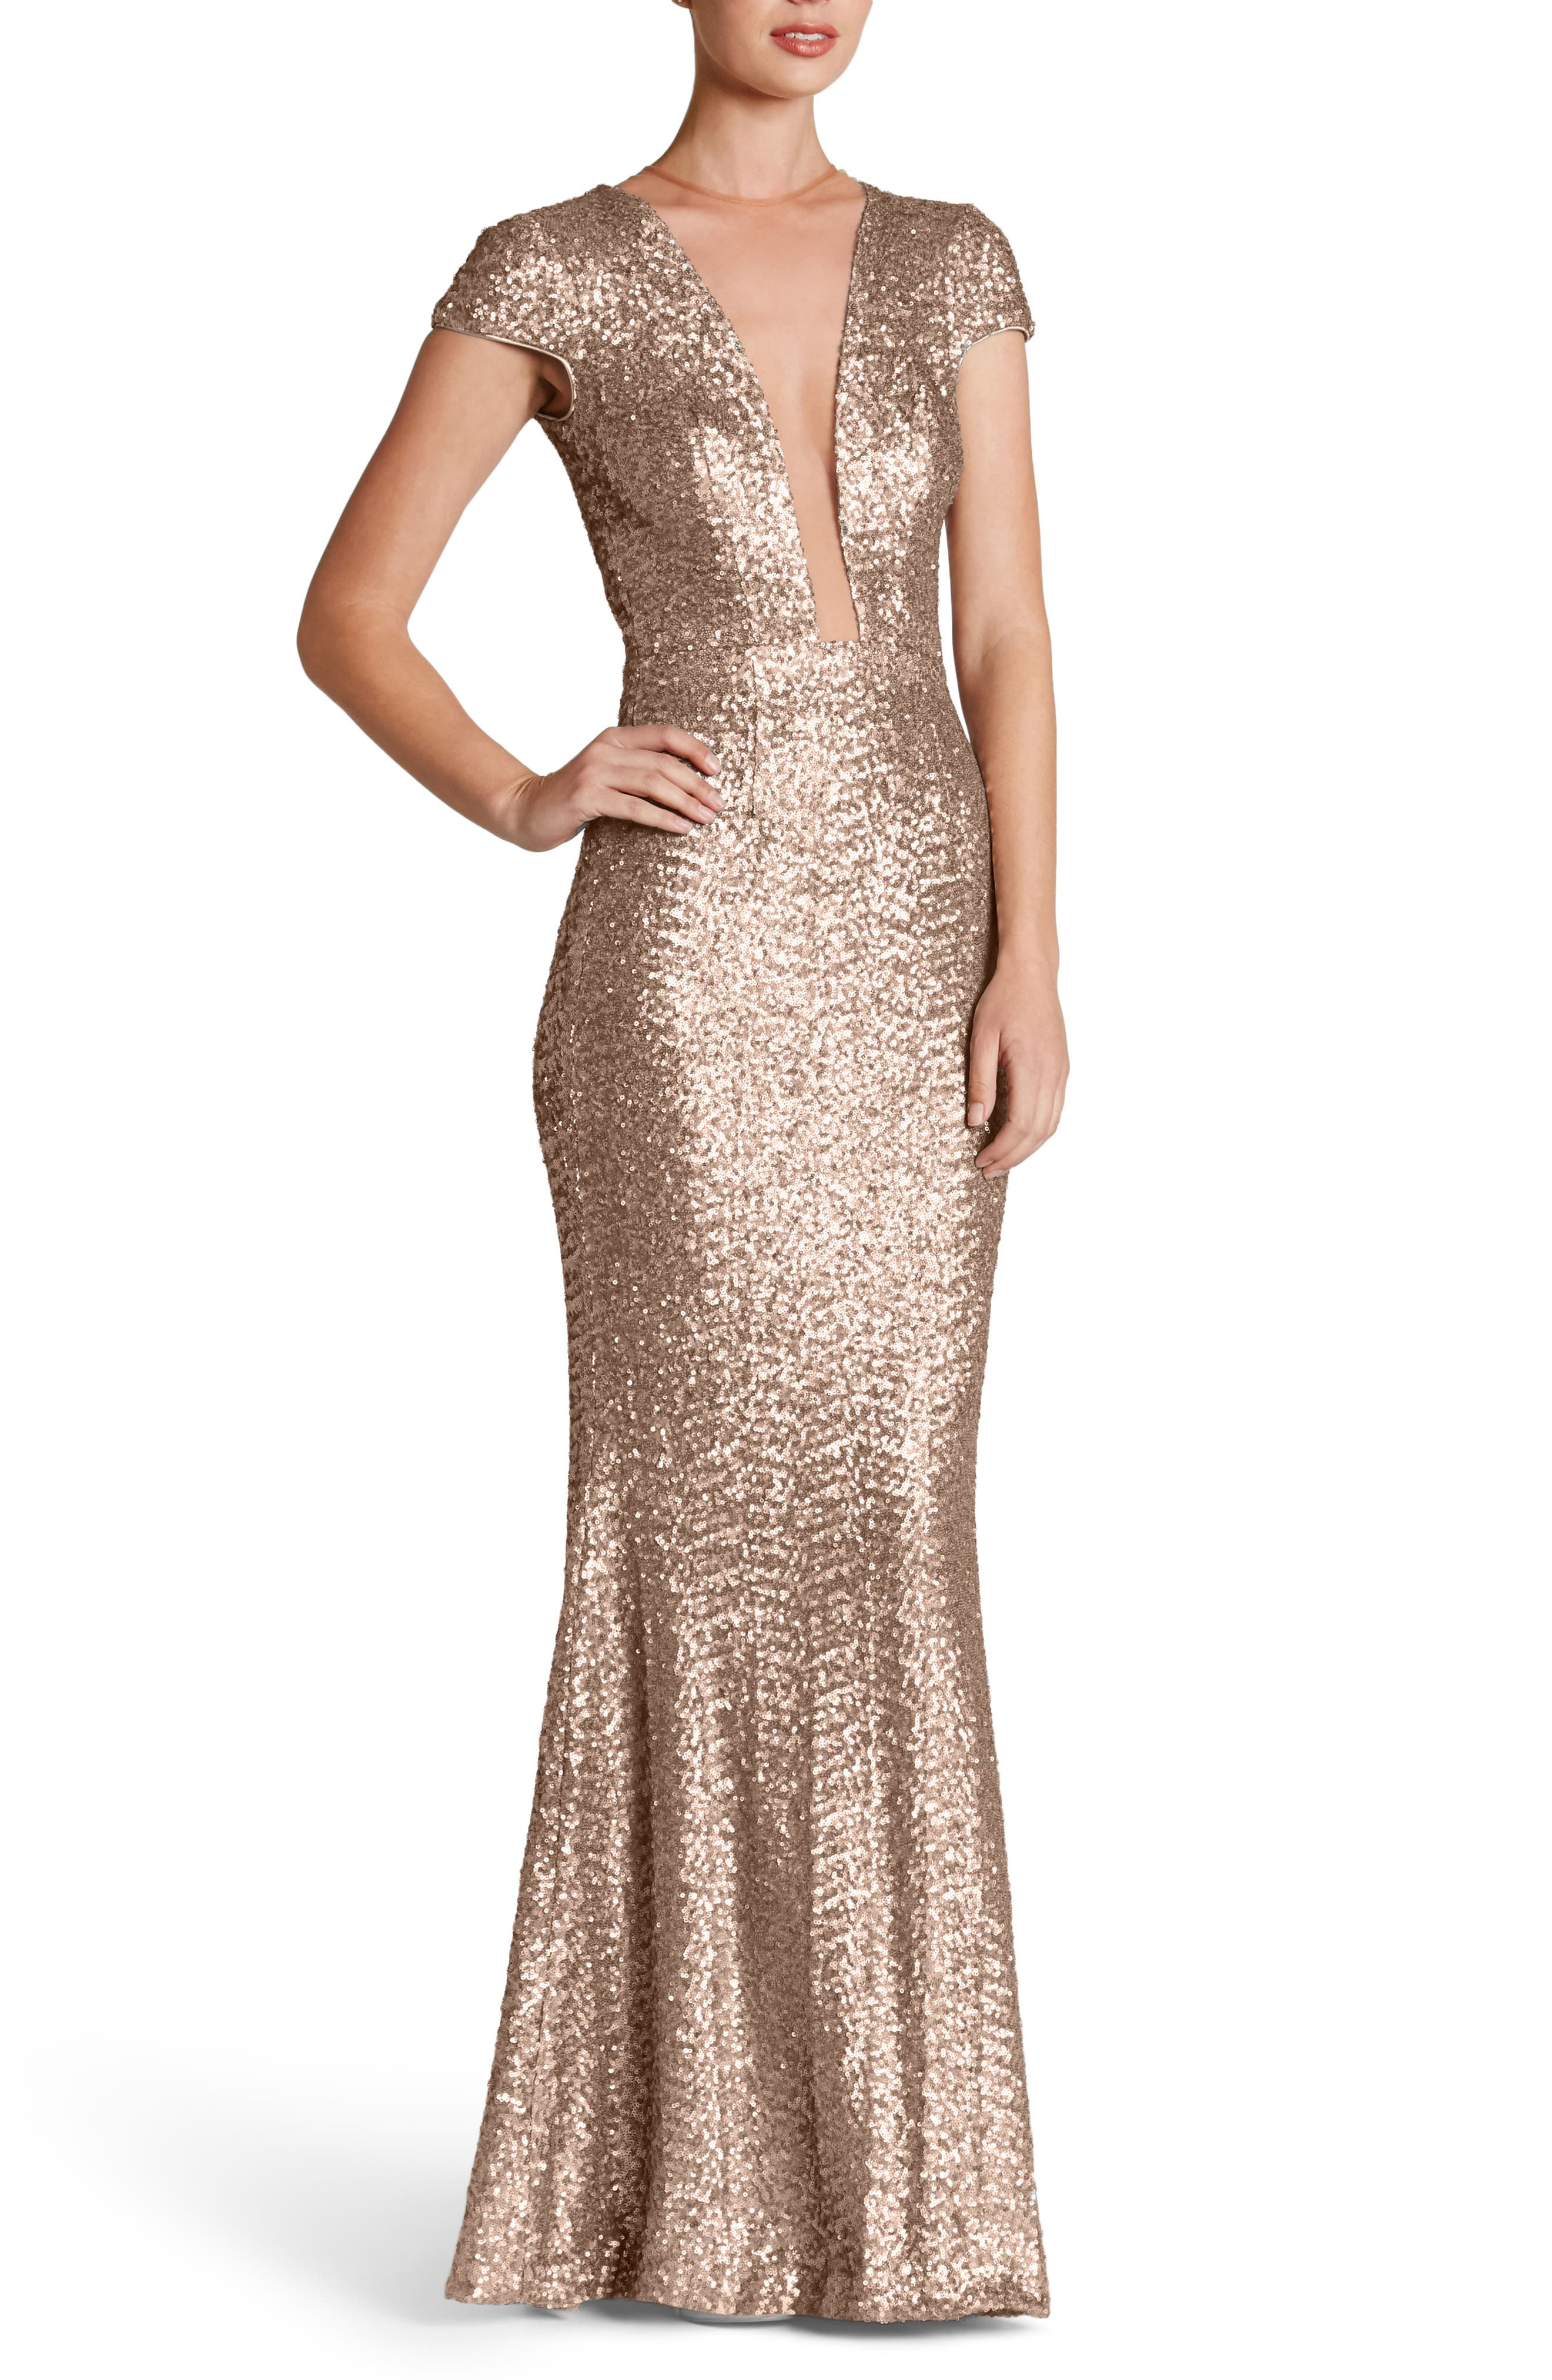 70s Prom, Formal, Evening, Party Dresses Womens Dress The Population Michelle Sequin Gown $320.00 AT vintagedancer.com